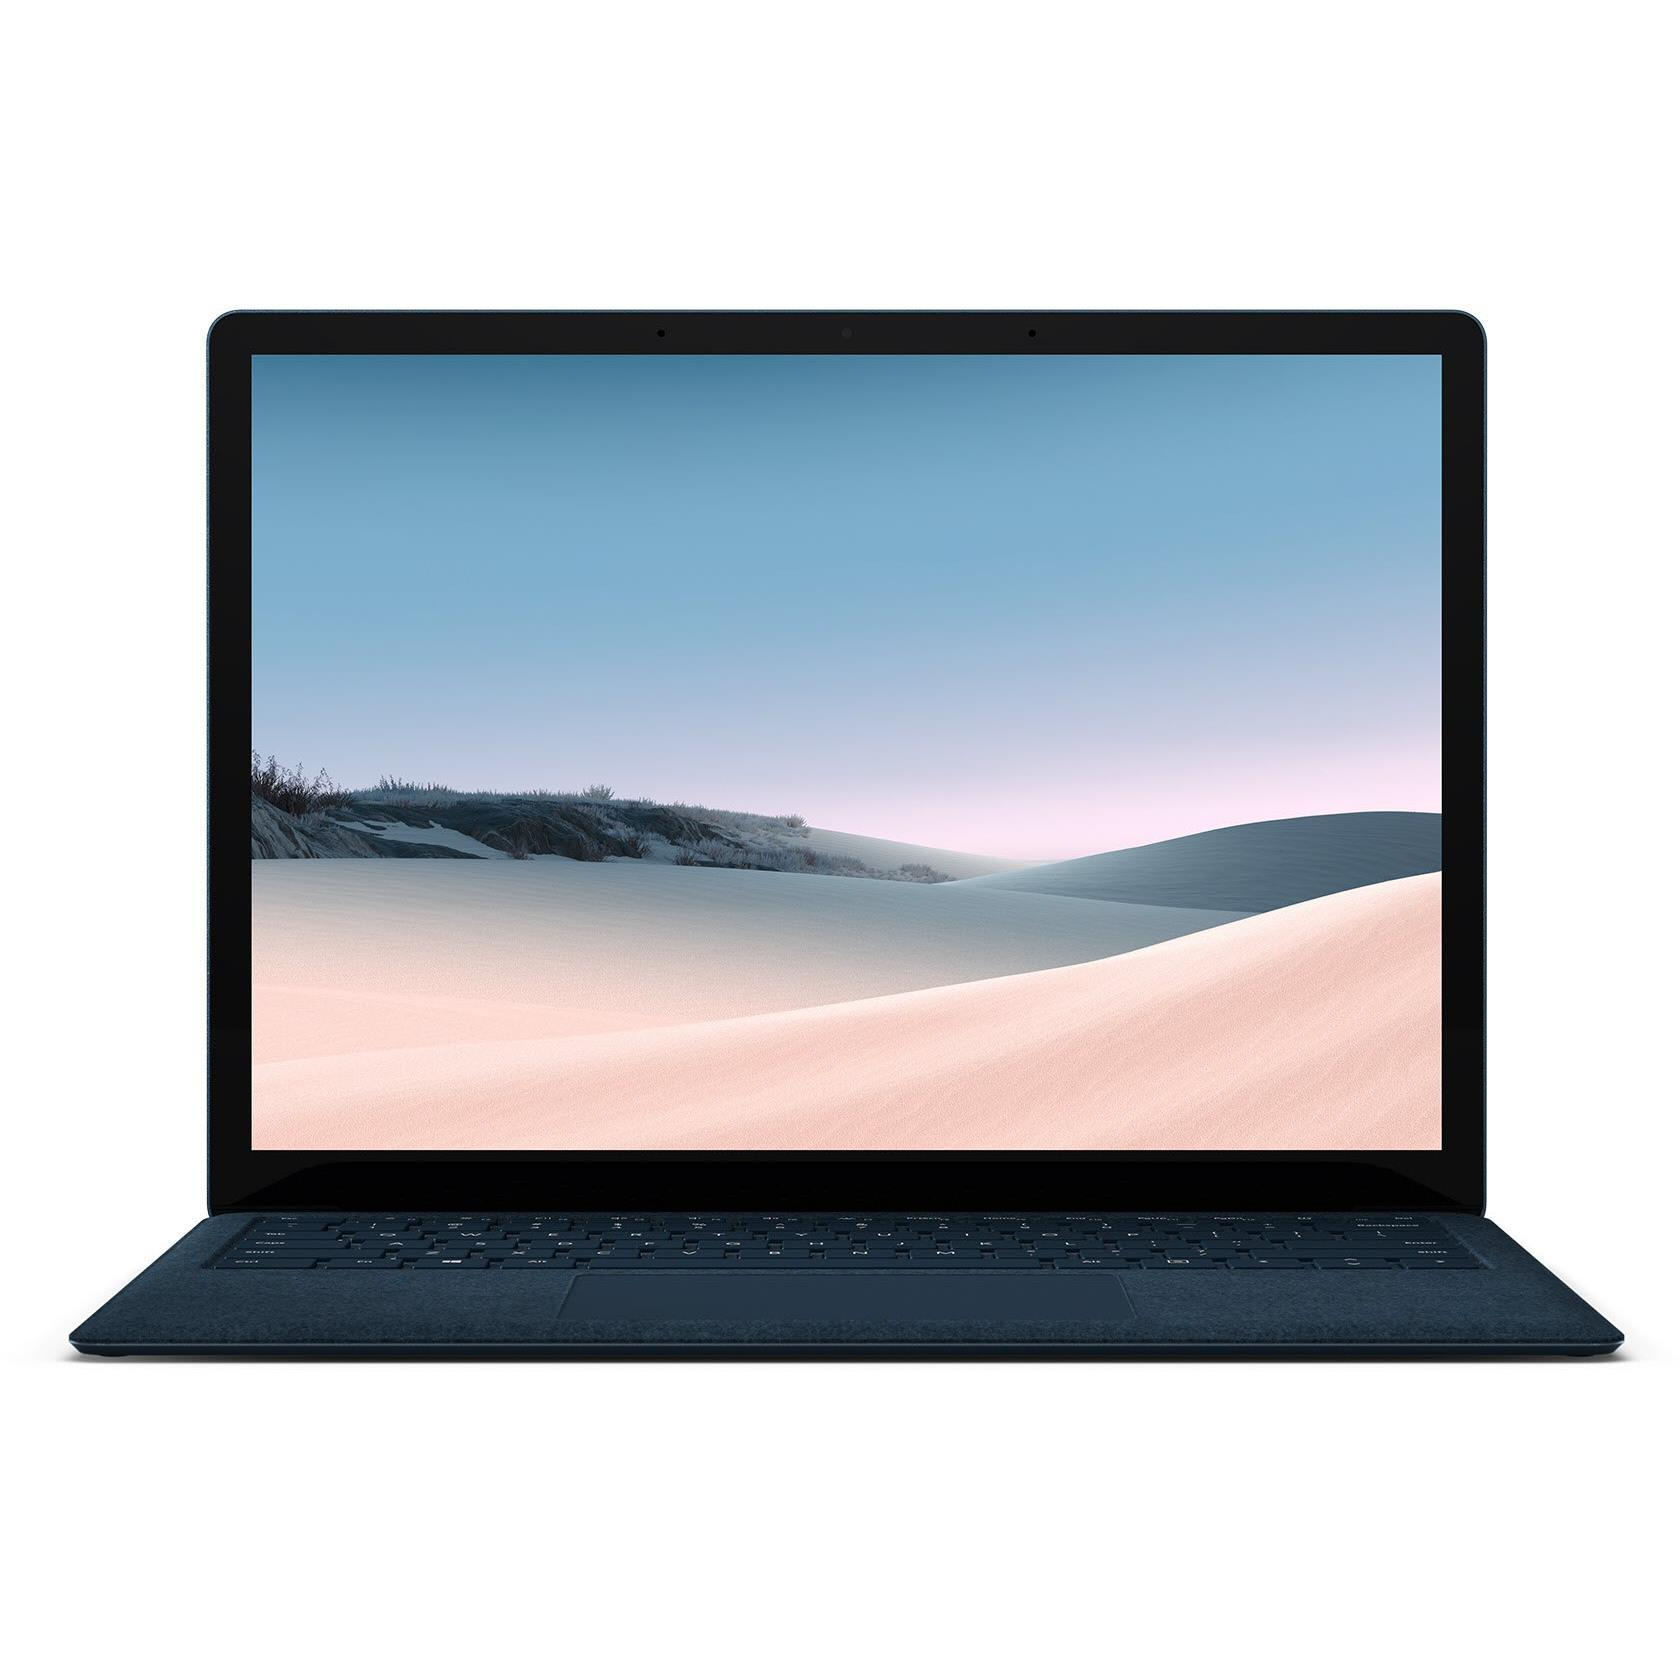 Microsoft Surface Laptop 3 13.5″ i5 256GB (Cobalt)